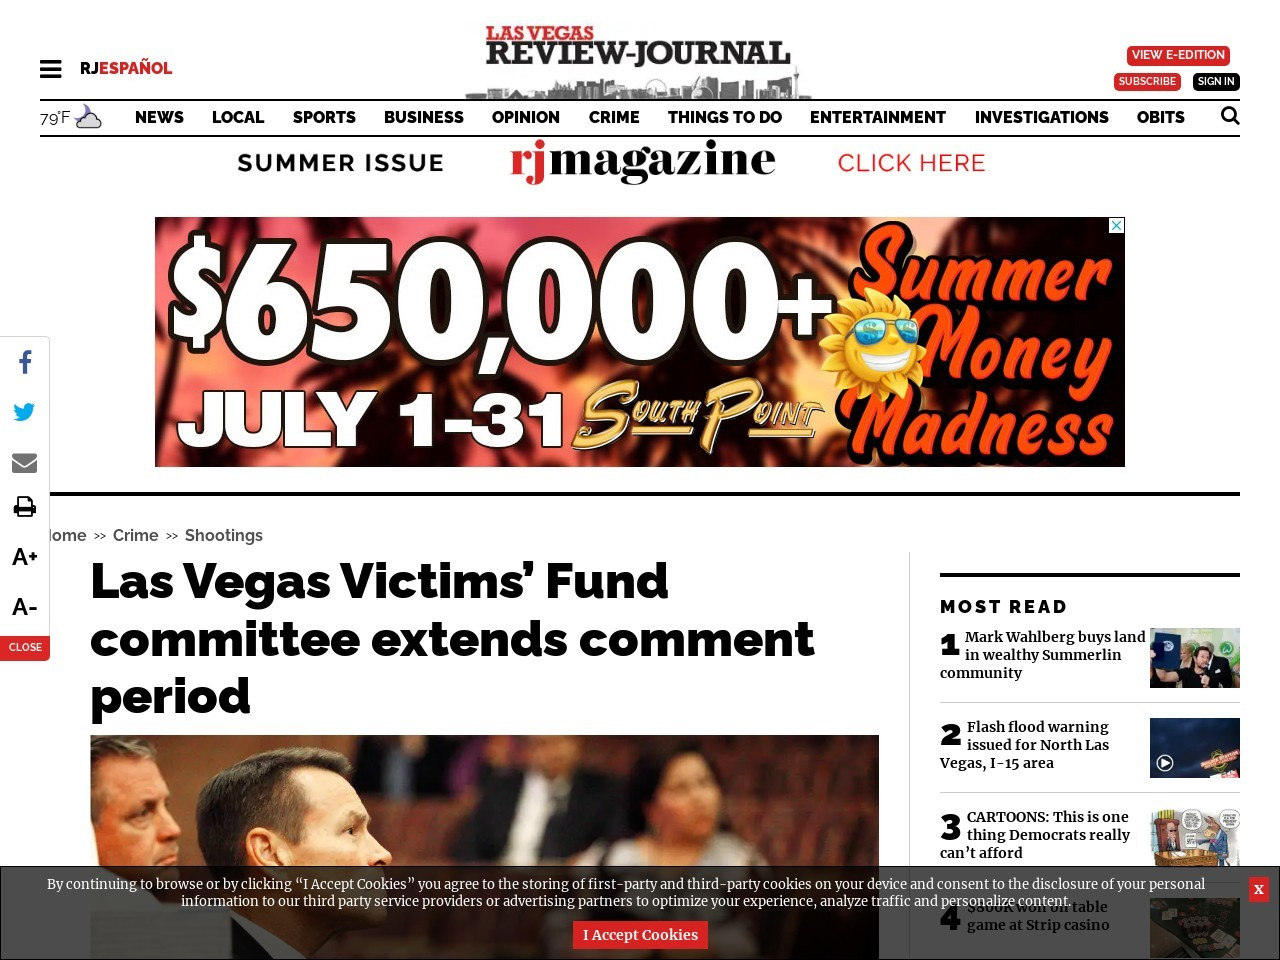 Las Vegas Victims' Fund committee extends comment period